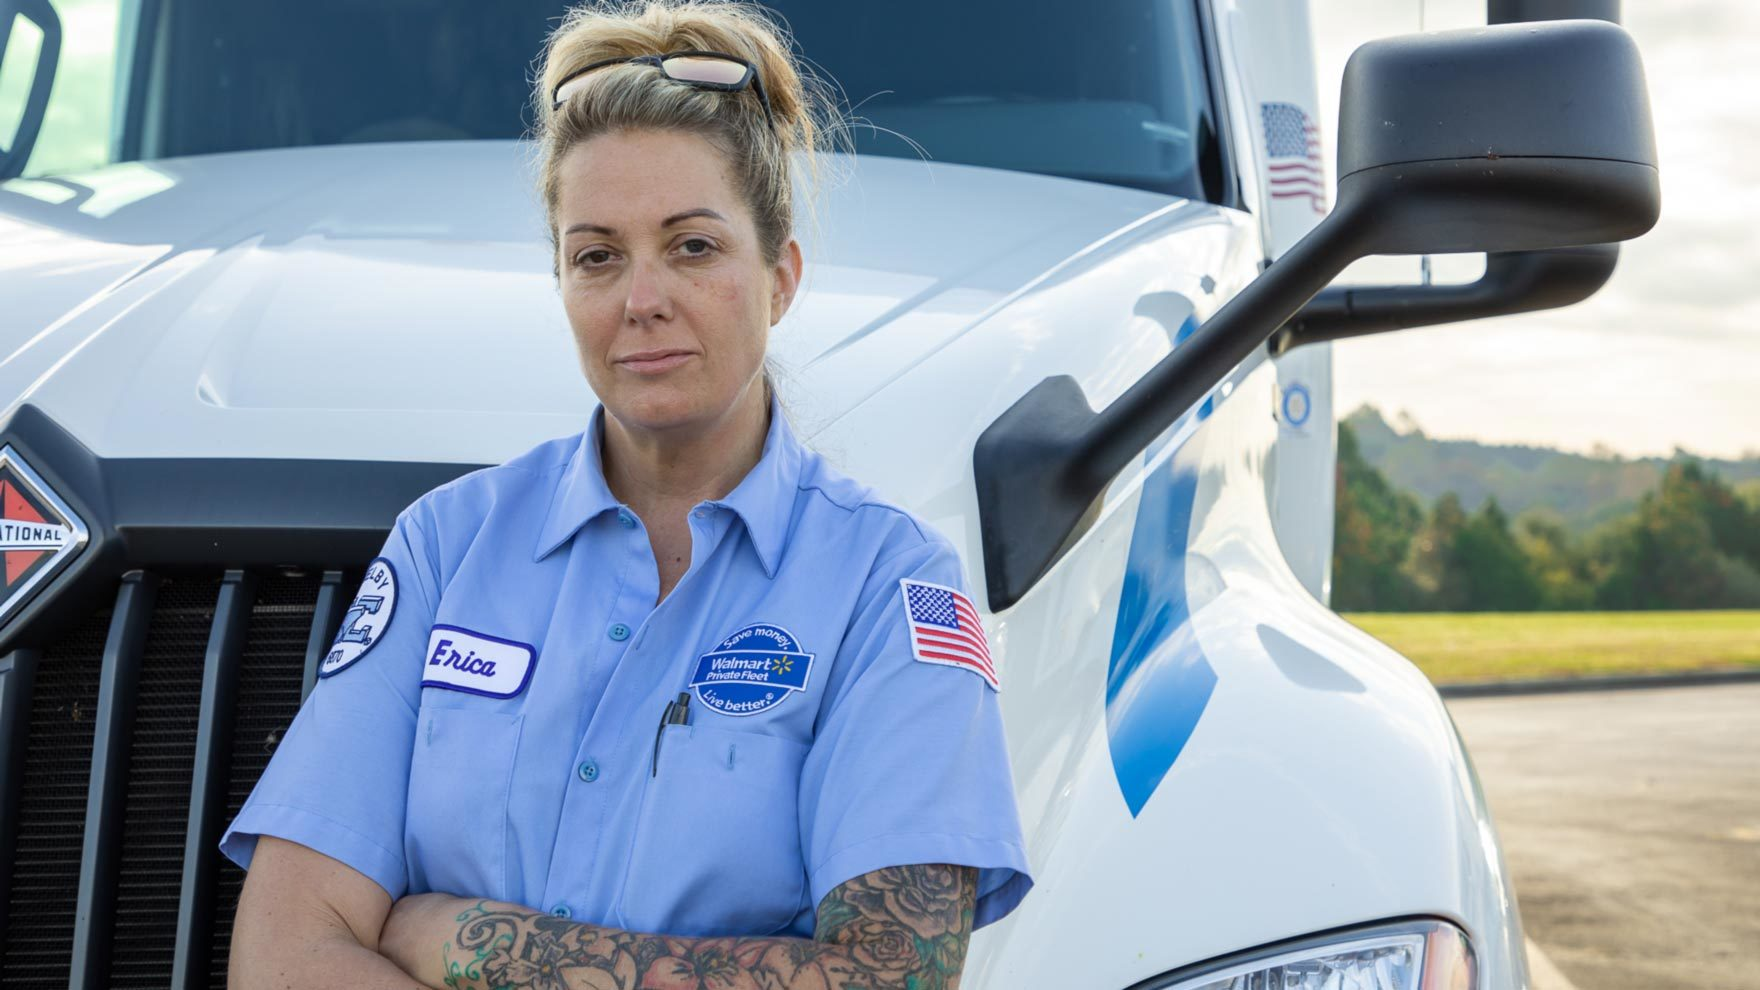 People in Supply Chain/erica-truck-driver.jpg